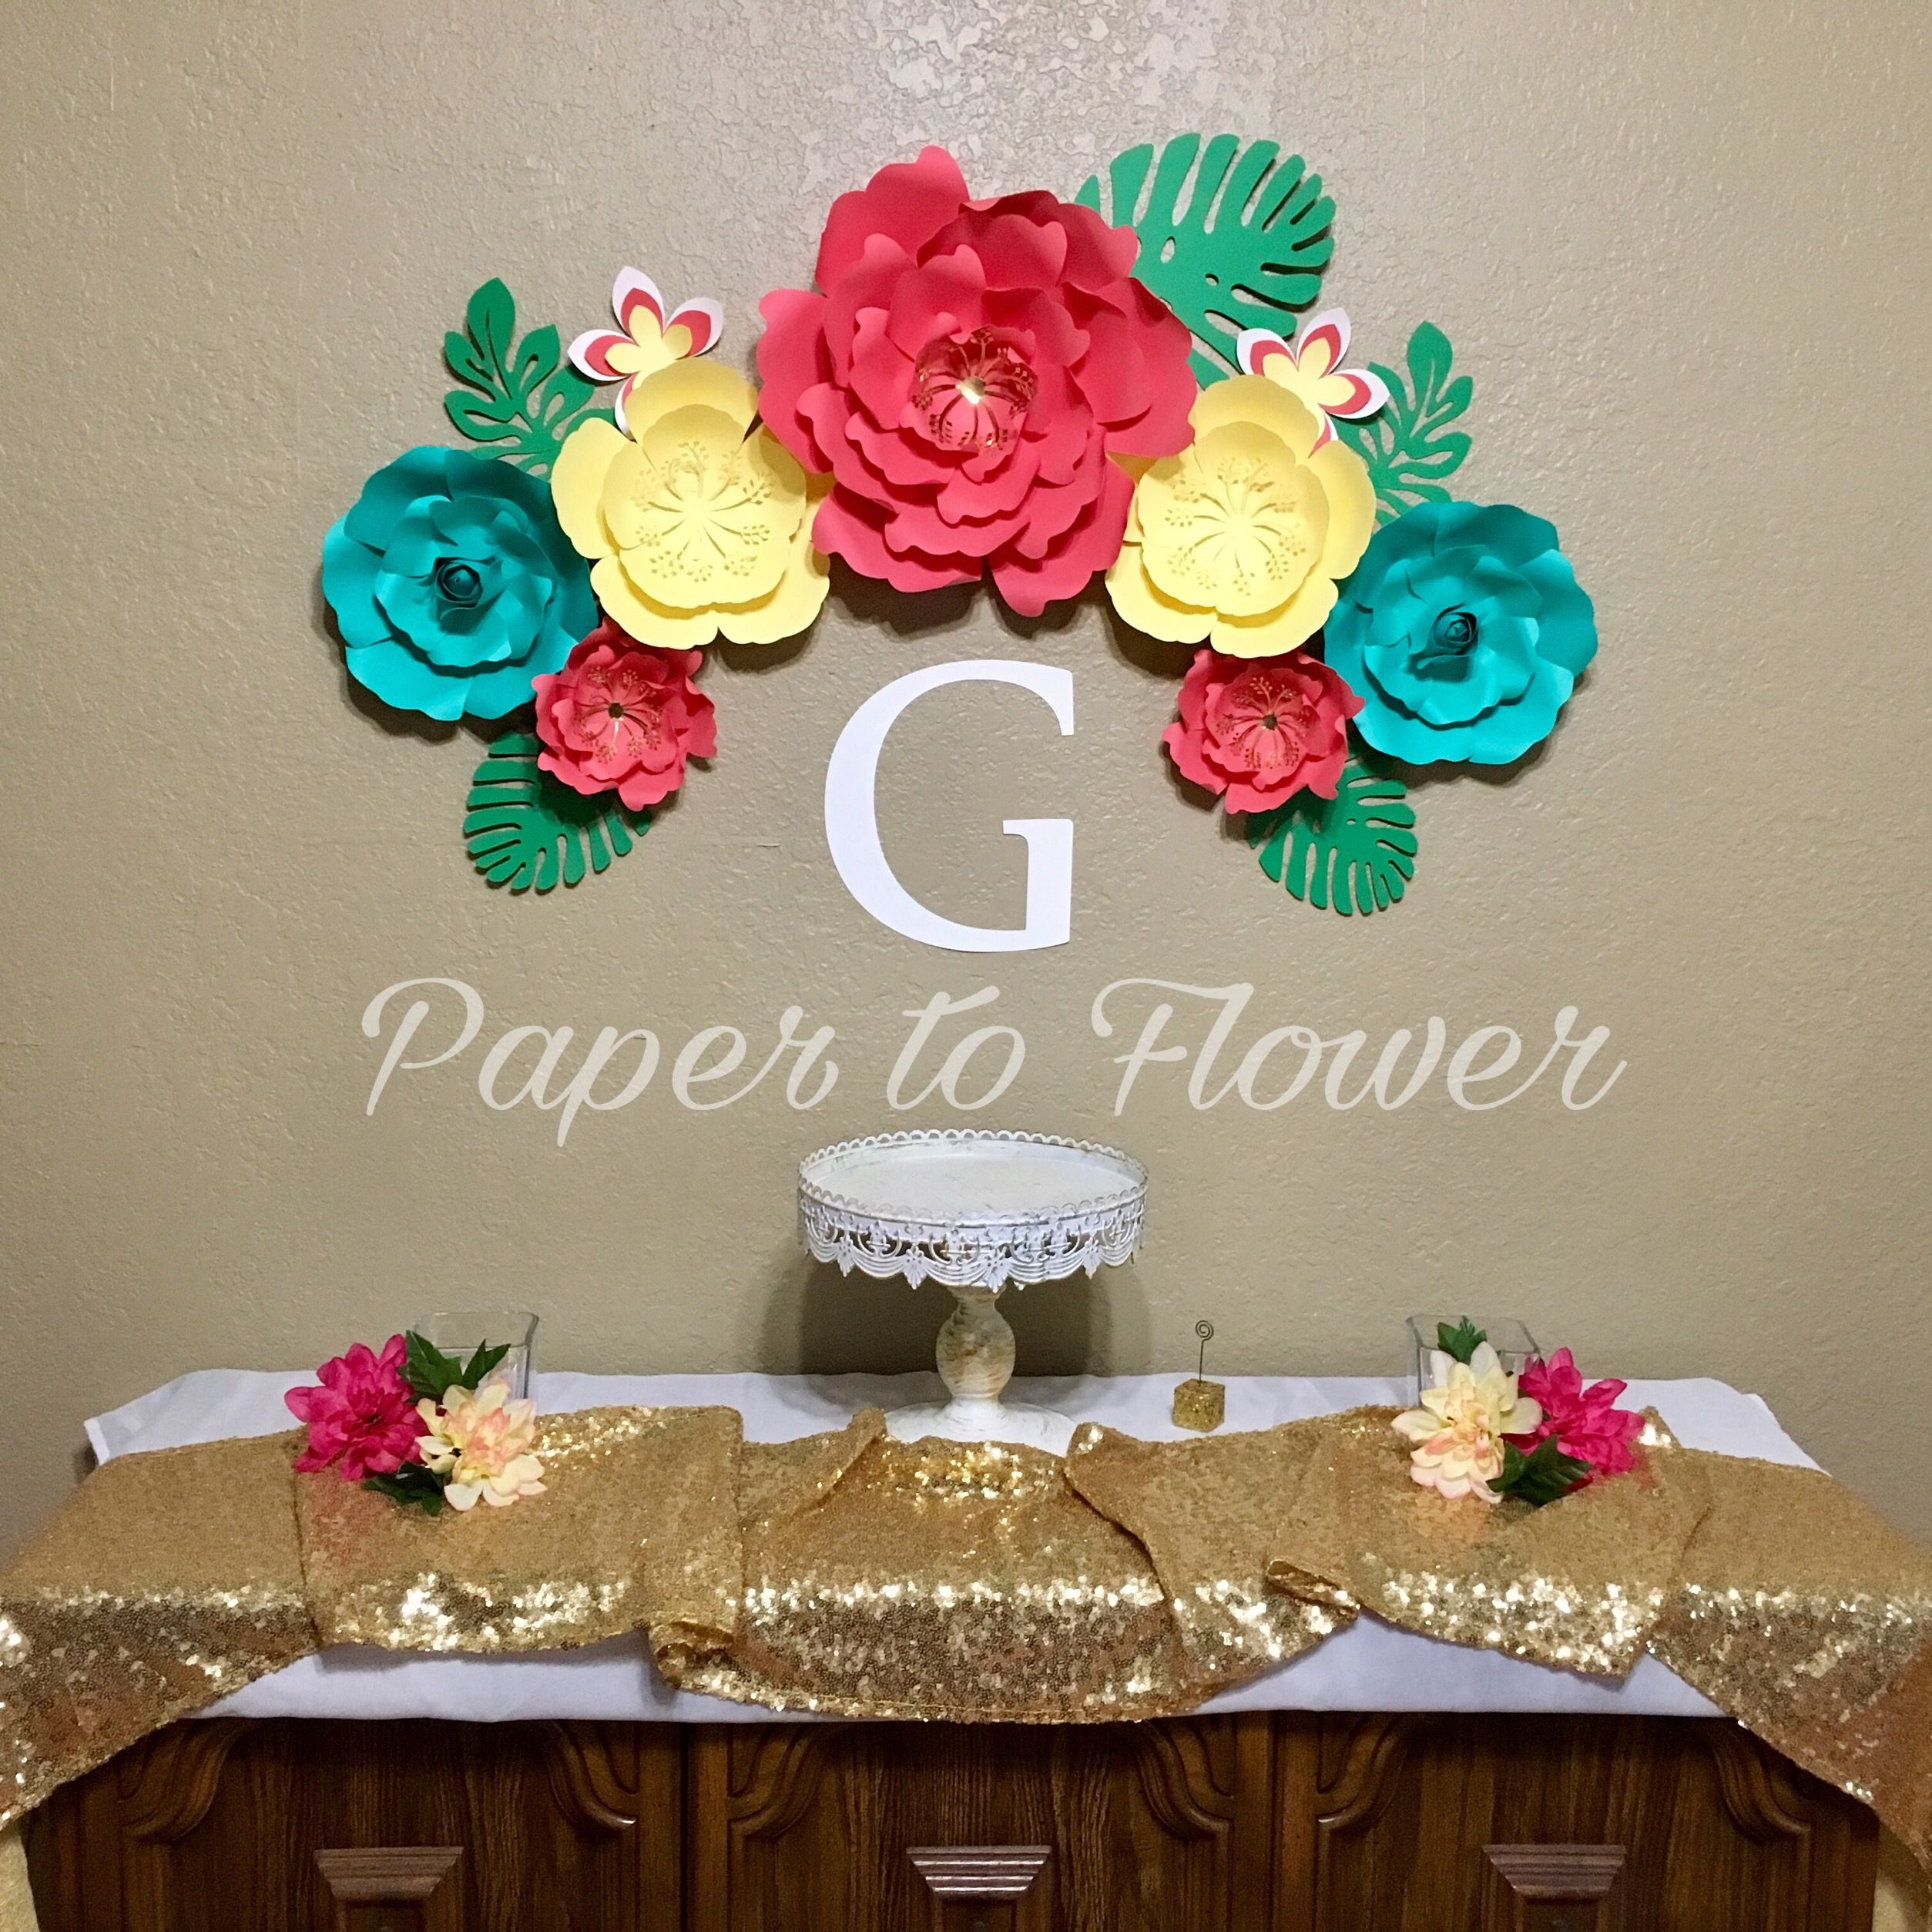 Moana Paper Flowers  Paper to Flower  Pinterest  Paper flowers